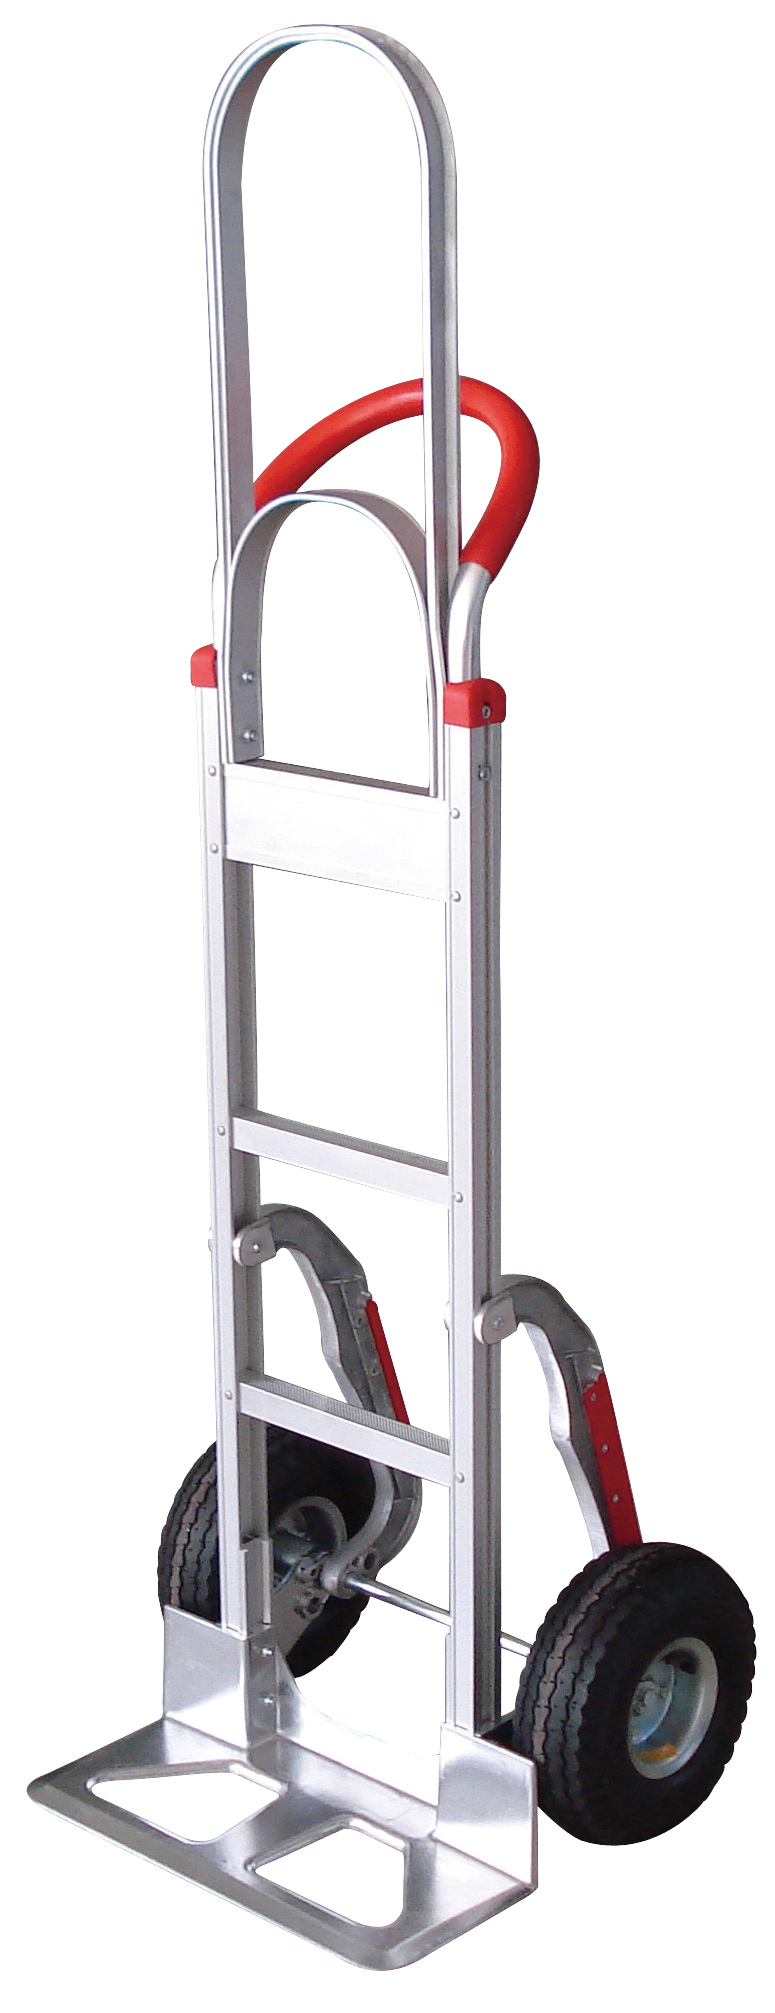 Hs 3 Aluminum Stair Climber Hand Truck With Tall Handle